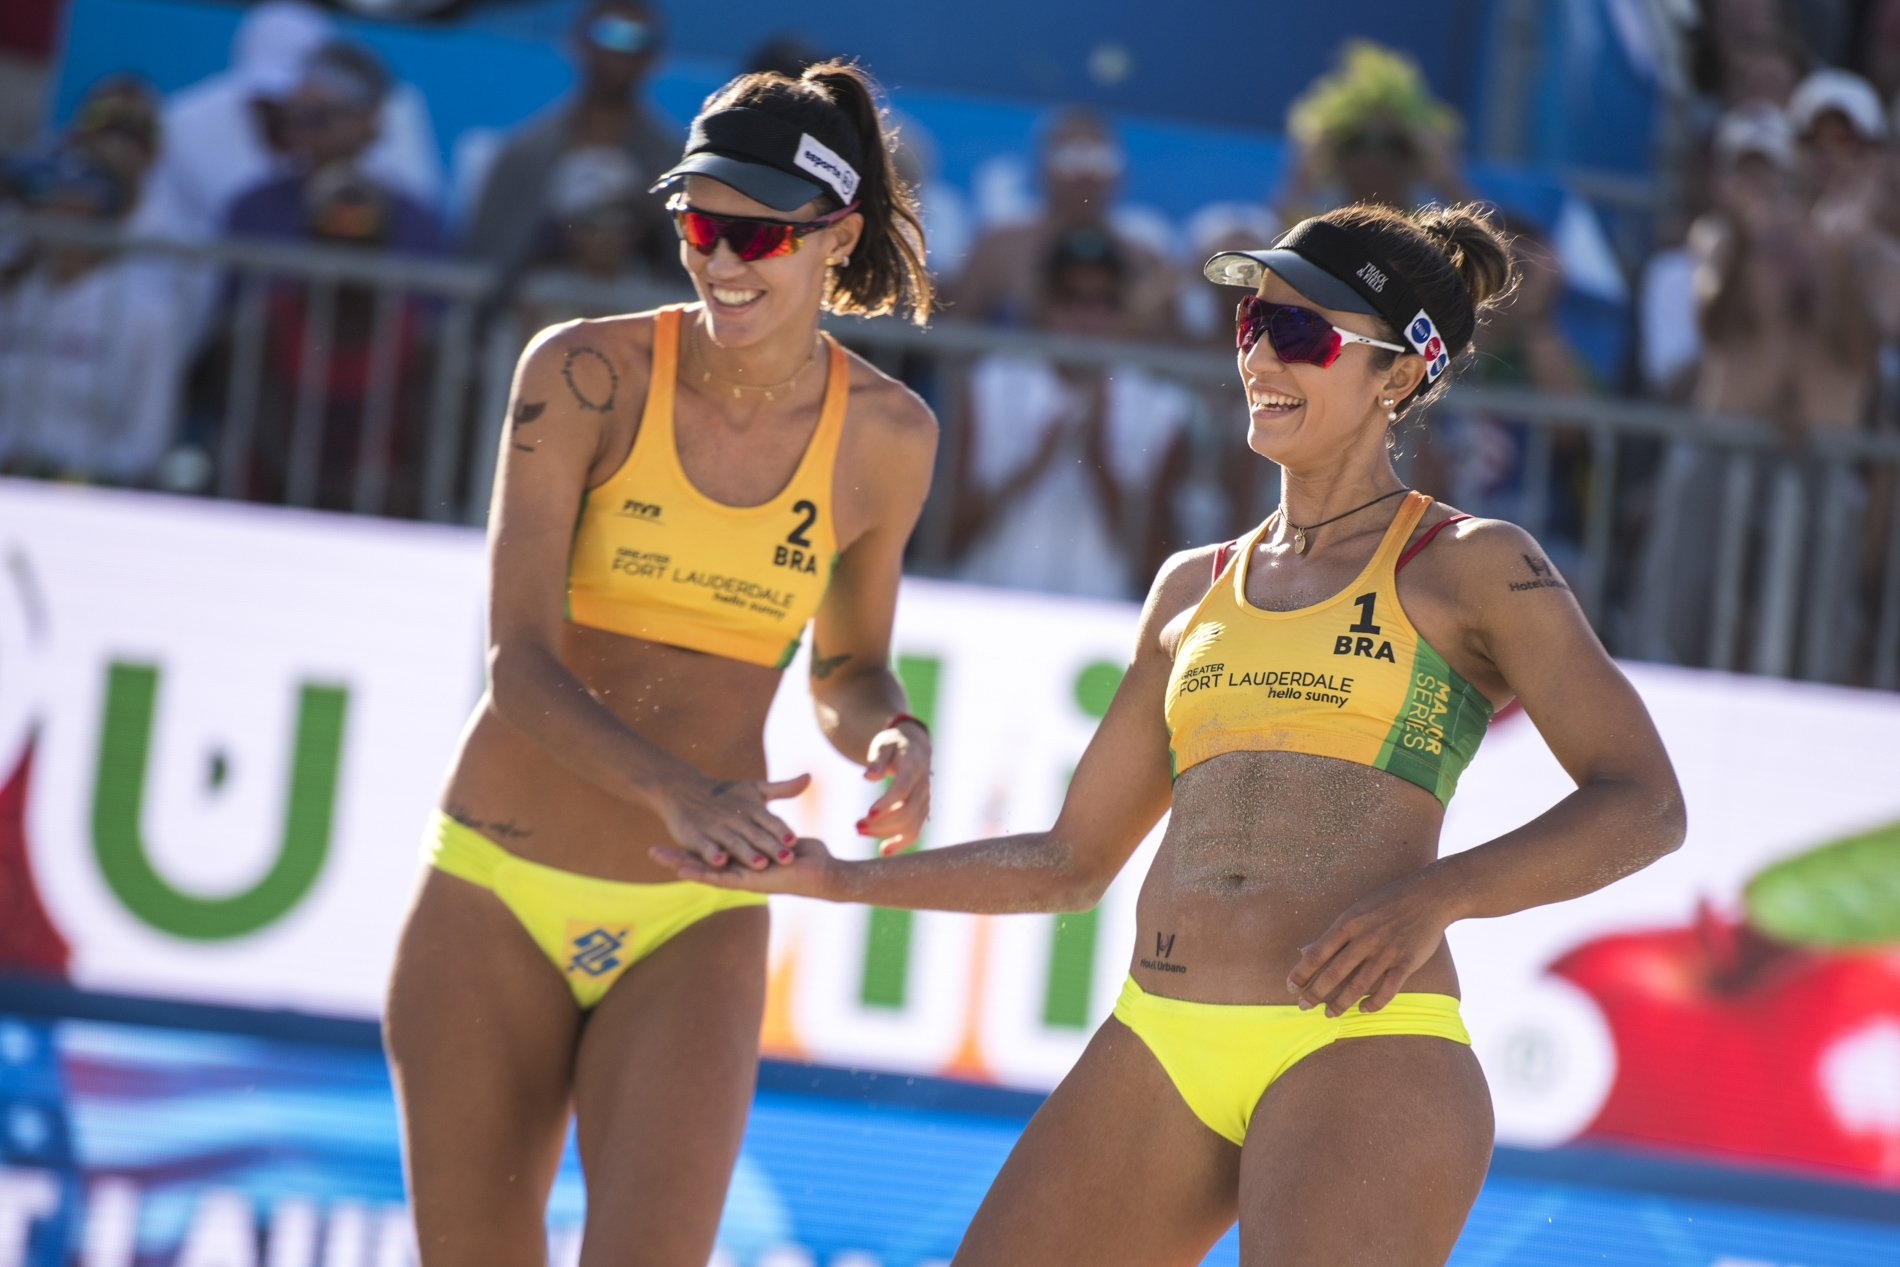 Fernanda and Barbara want to use the good momentum to get to the top of the podium in Maceió